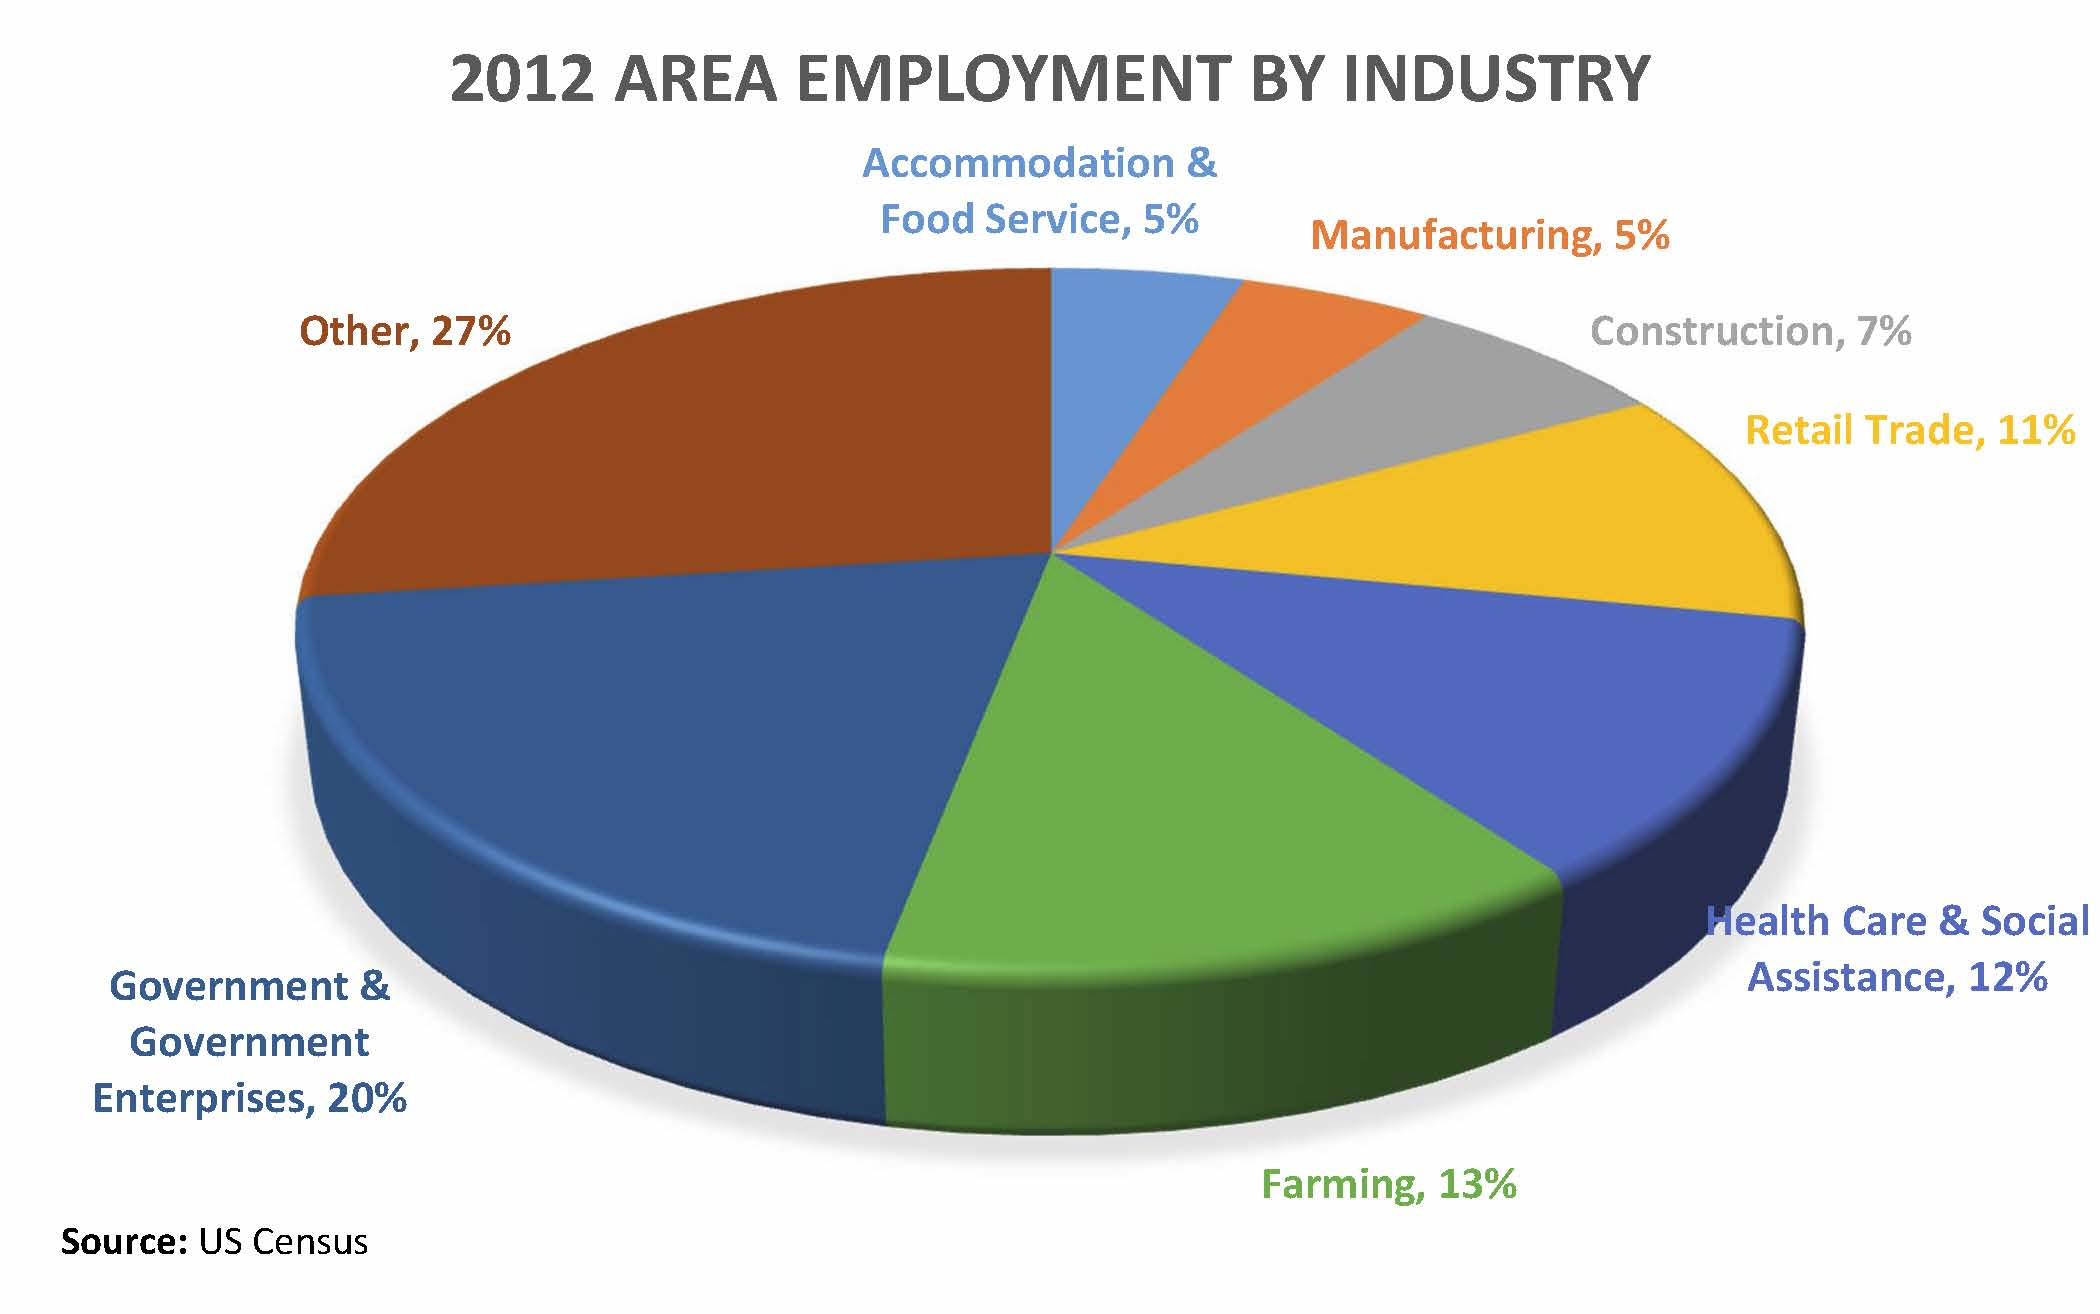 Employment by Industry 2012